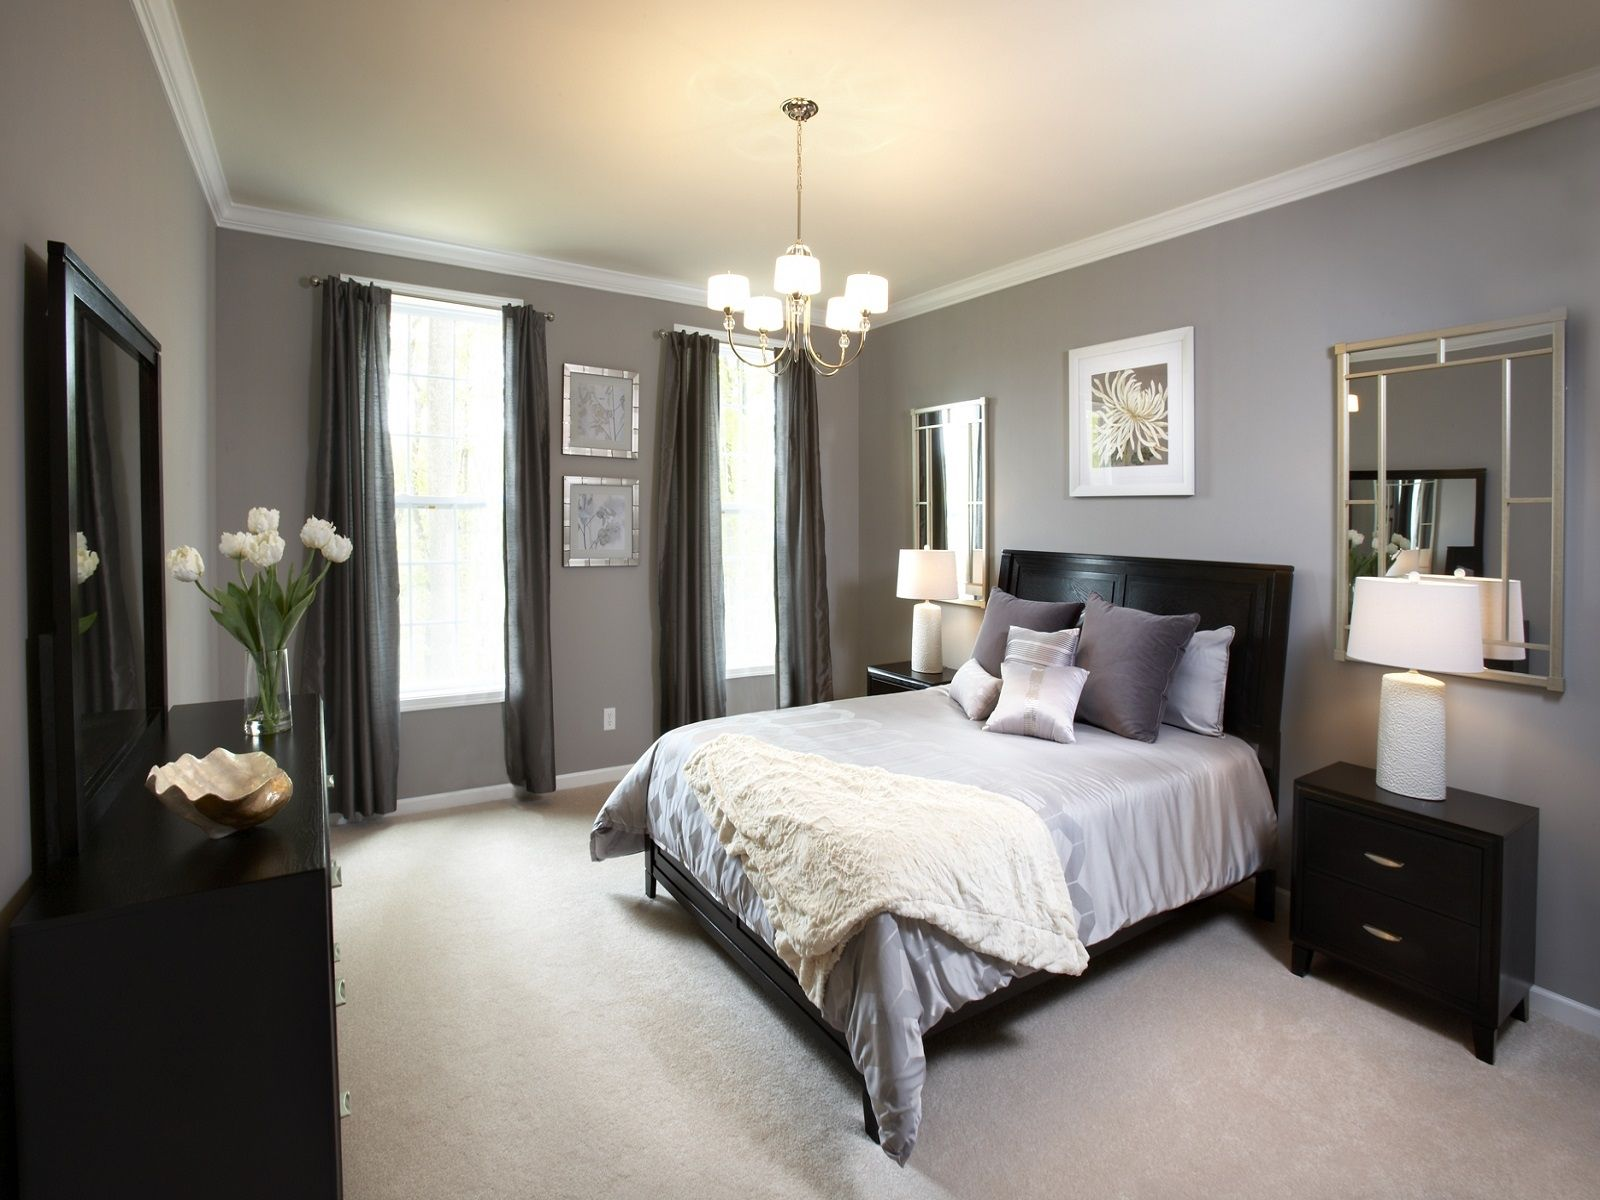 45 beautiful paint color ideas for master bedroom grey bedroom decormaster - Master Bedroom Interior Decorating